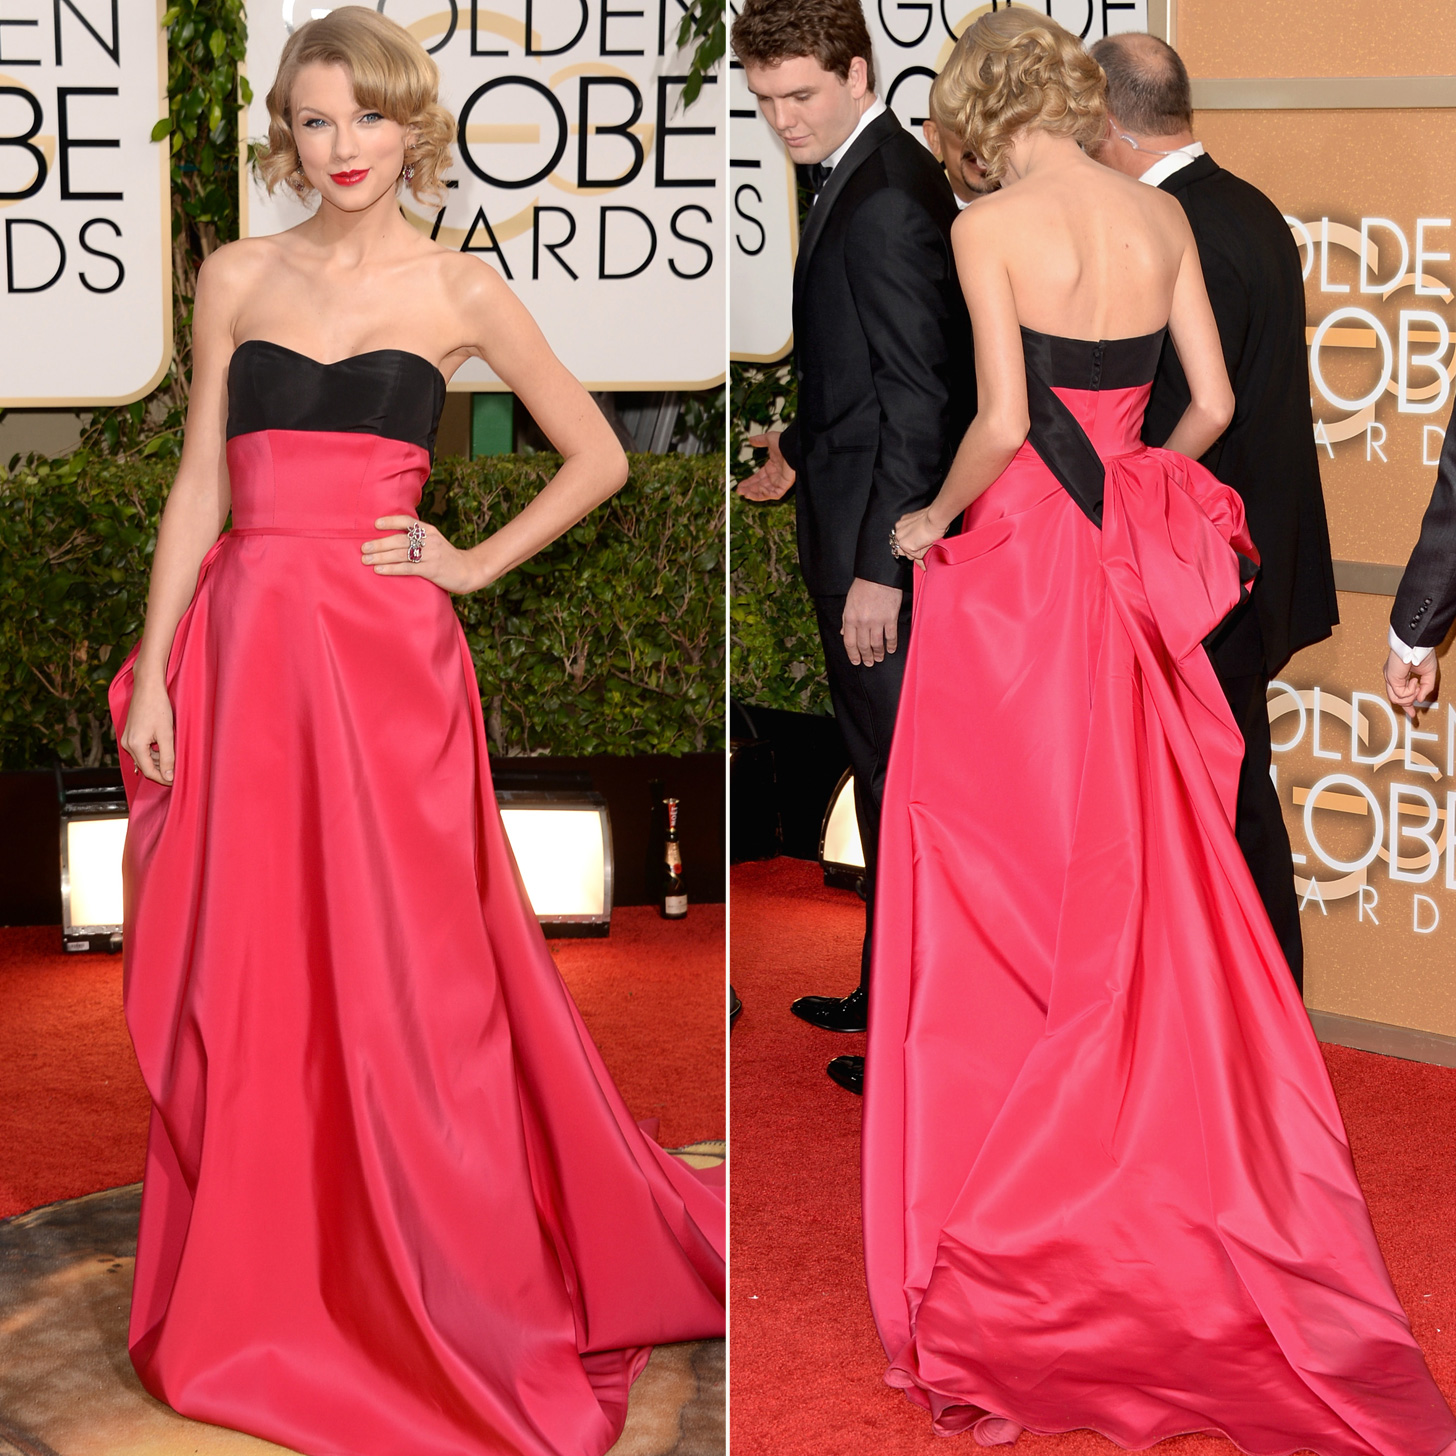 http://media3.onsugar.com/files/2014/01/12/089/n/1922564/26efa7c23f5fbfad_taylor-swift-golden-globes-poll.jpg